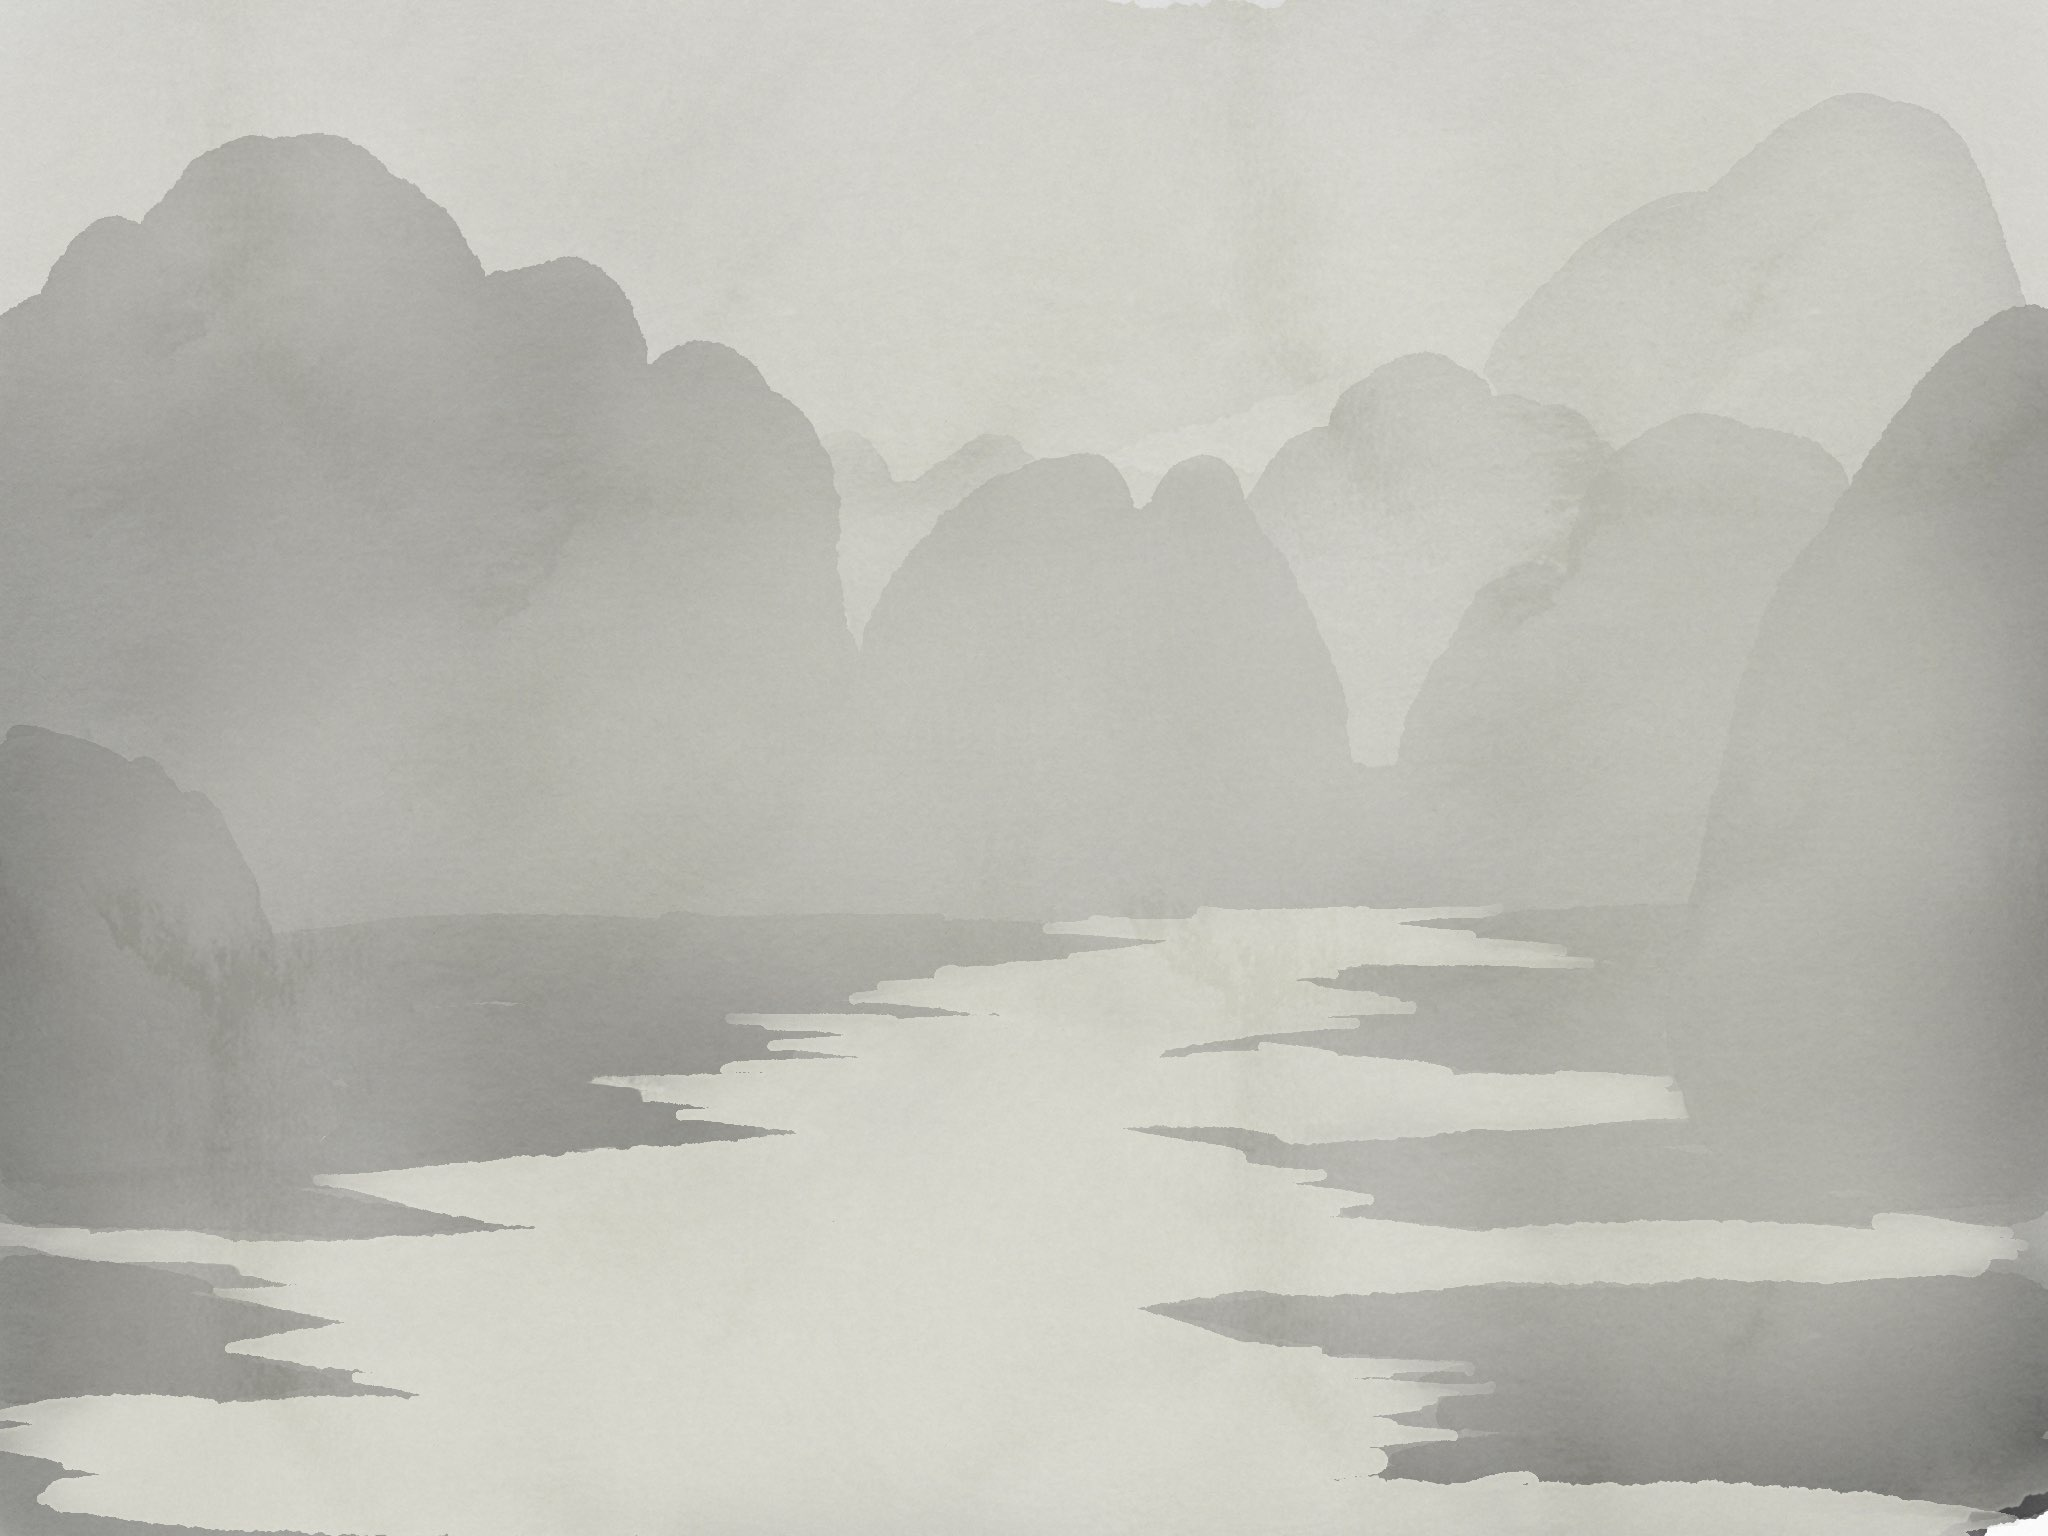 Halong Bay made with Sketches